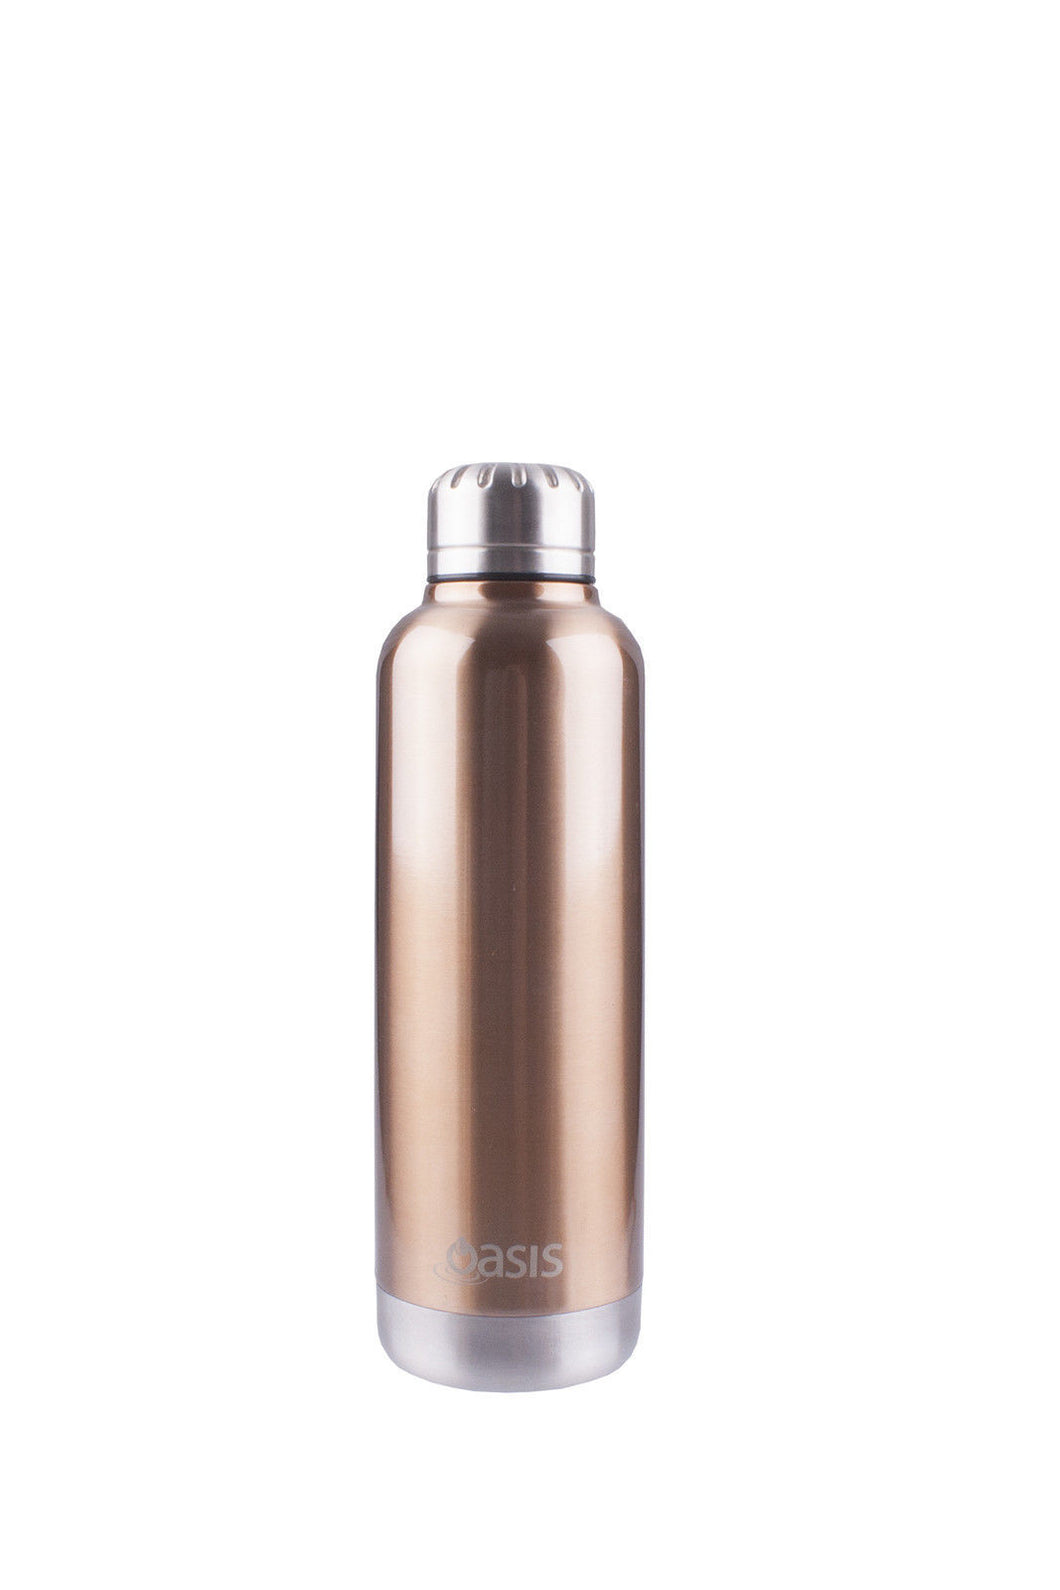 Oasis Canteen Stainless Steel Double Wall Insulated Water Bottle 750ml - Champagne